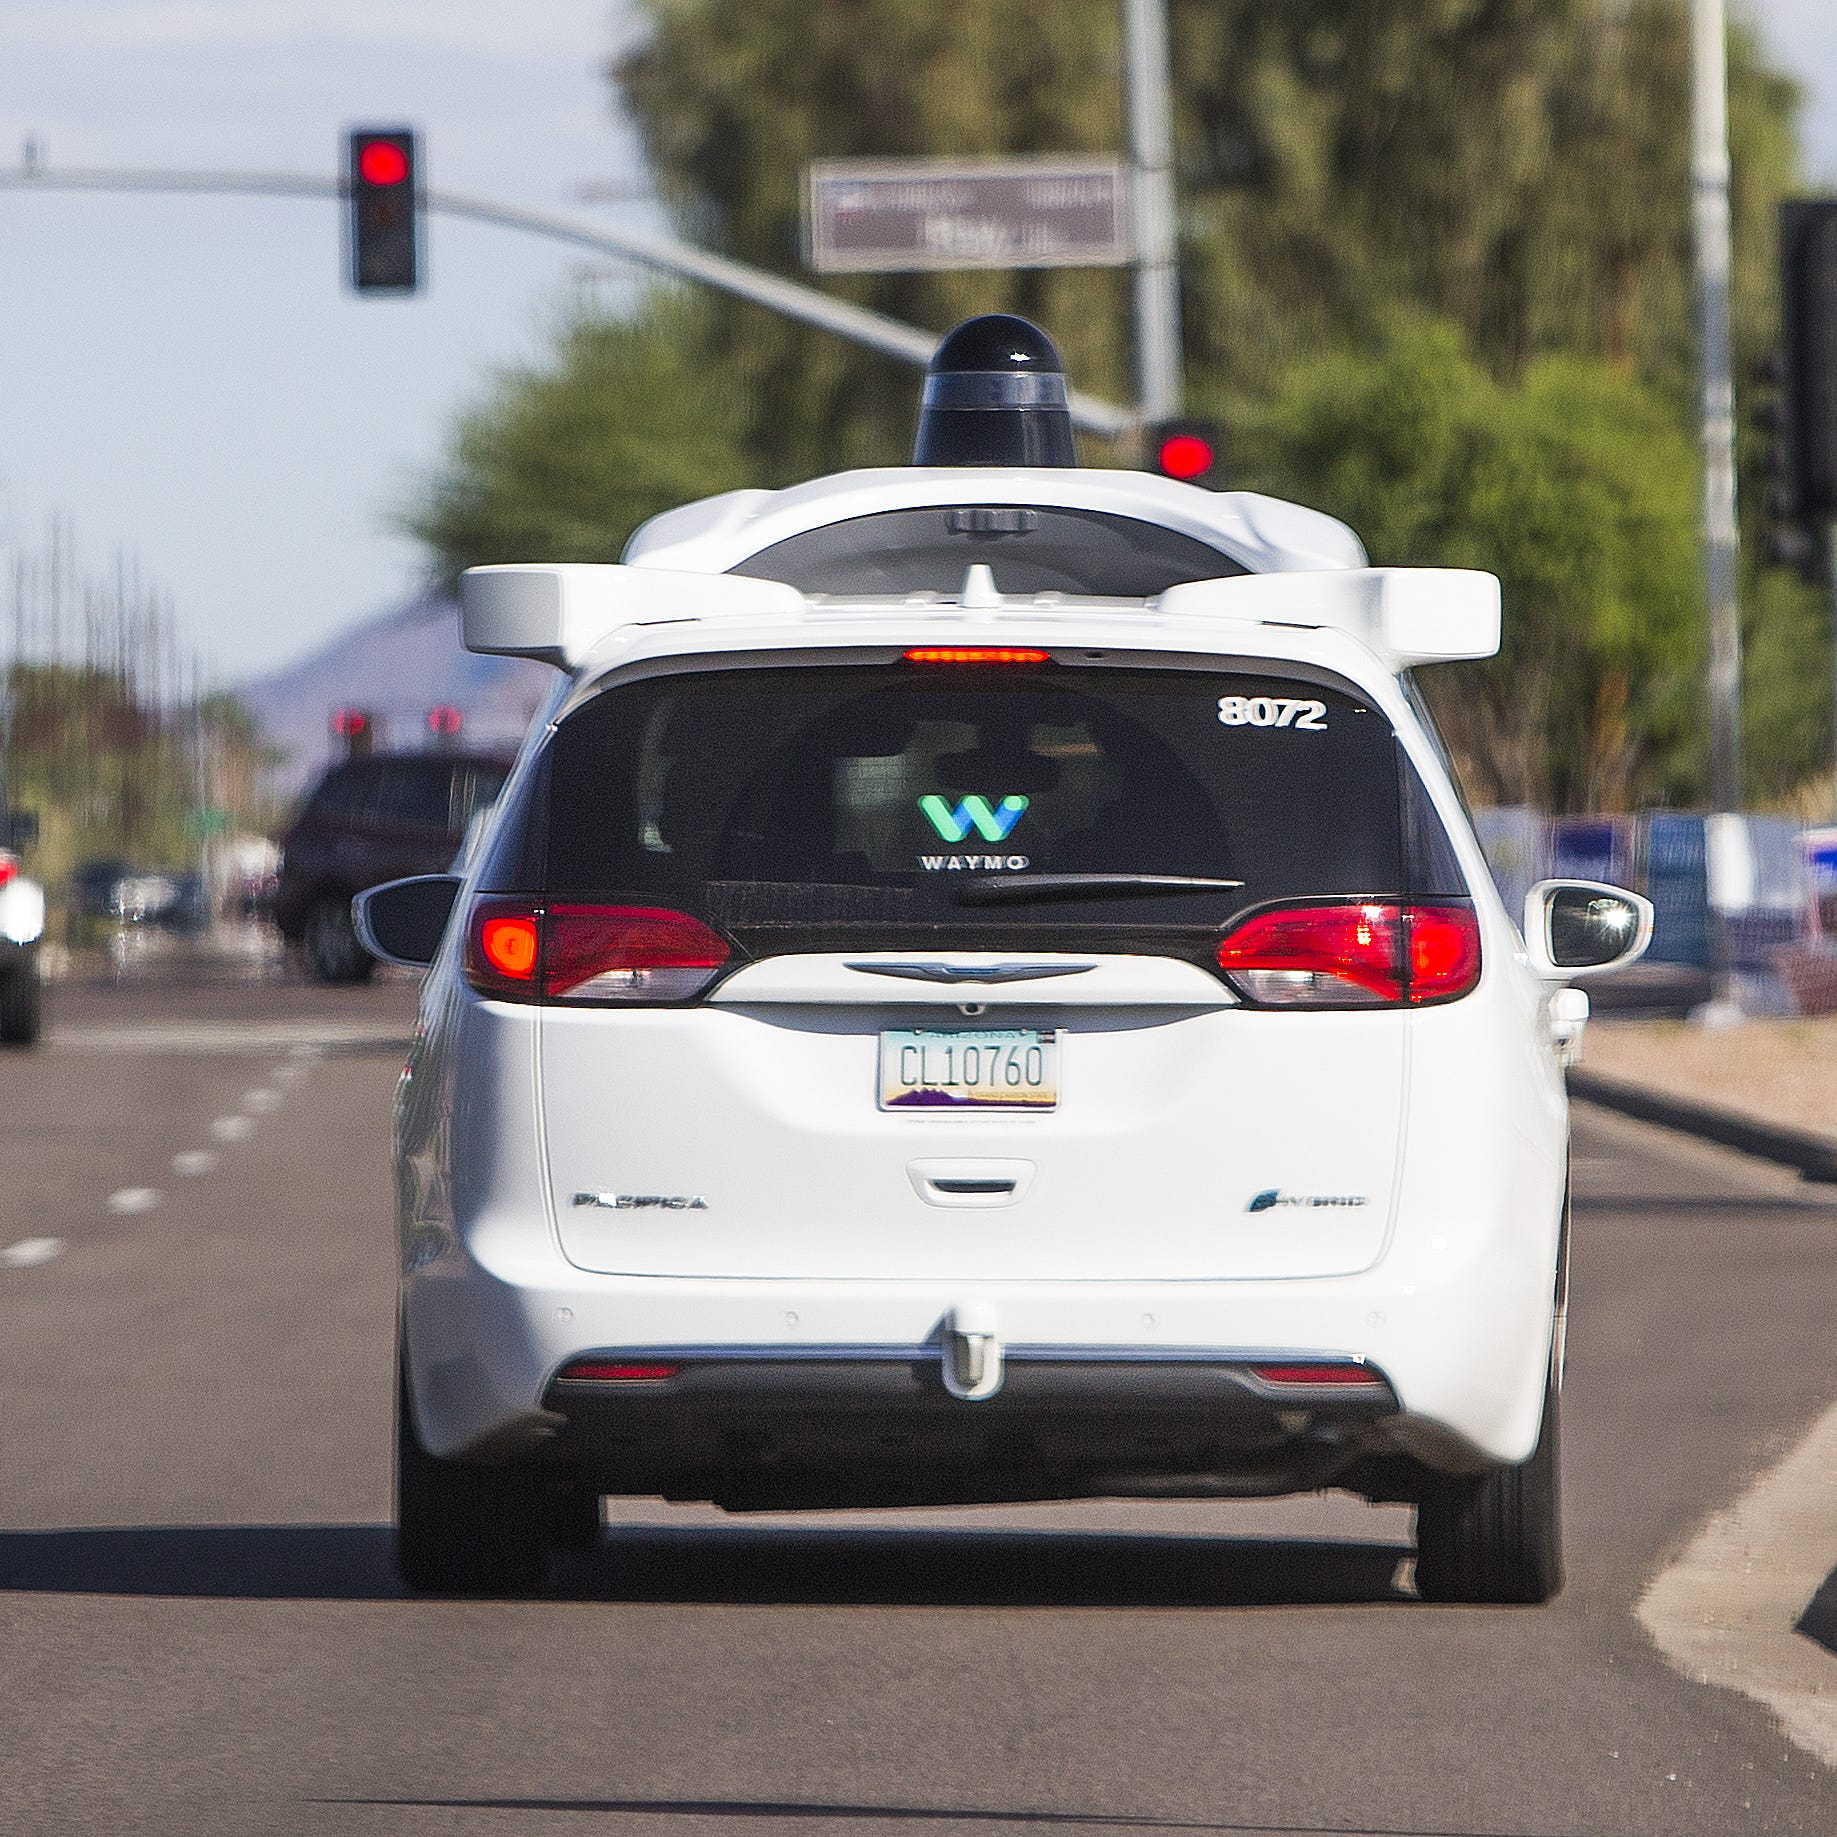 Waymo plans big expansion of driverless car operations in Mesa